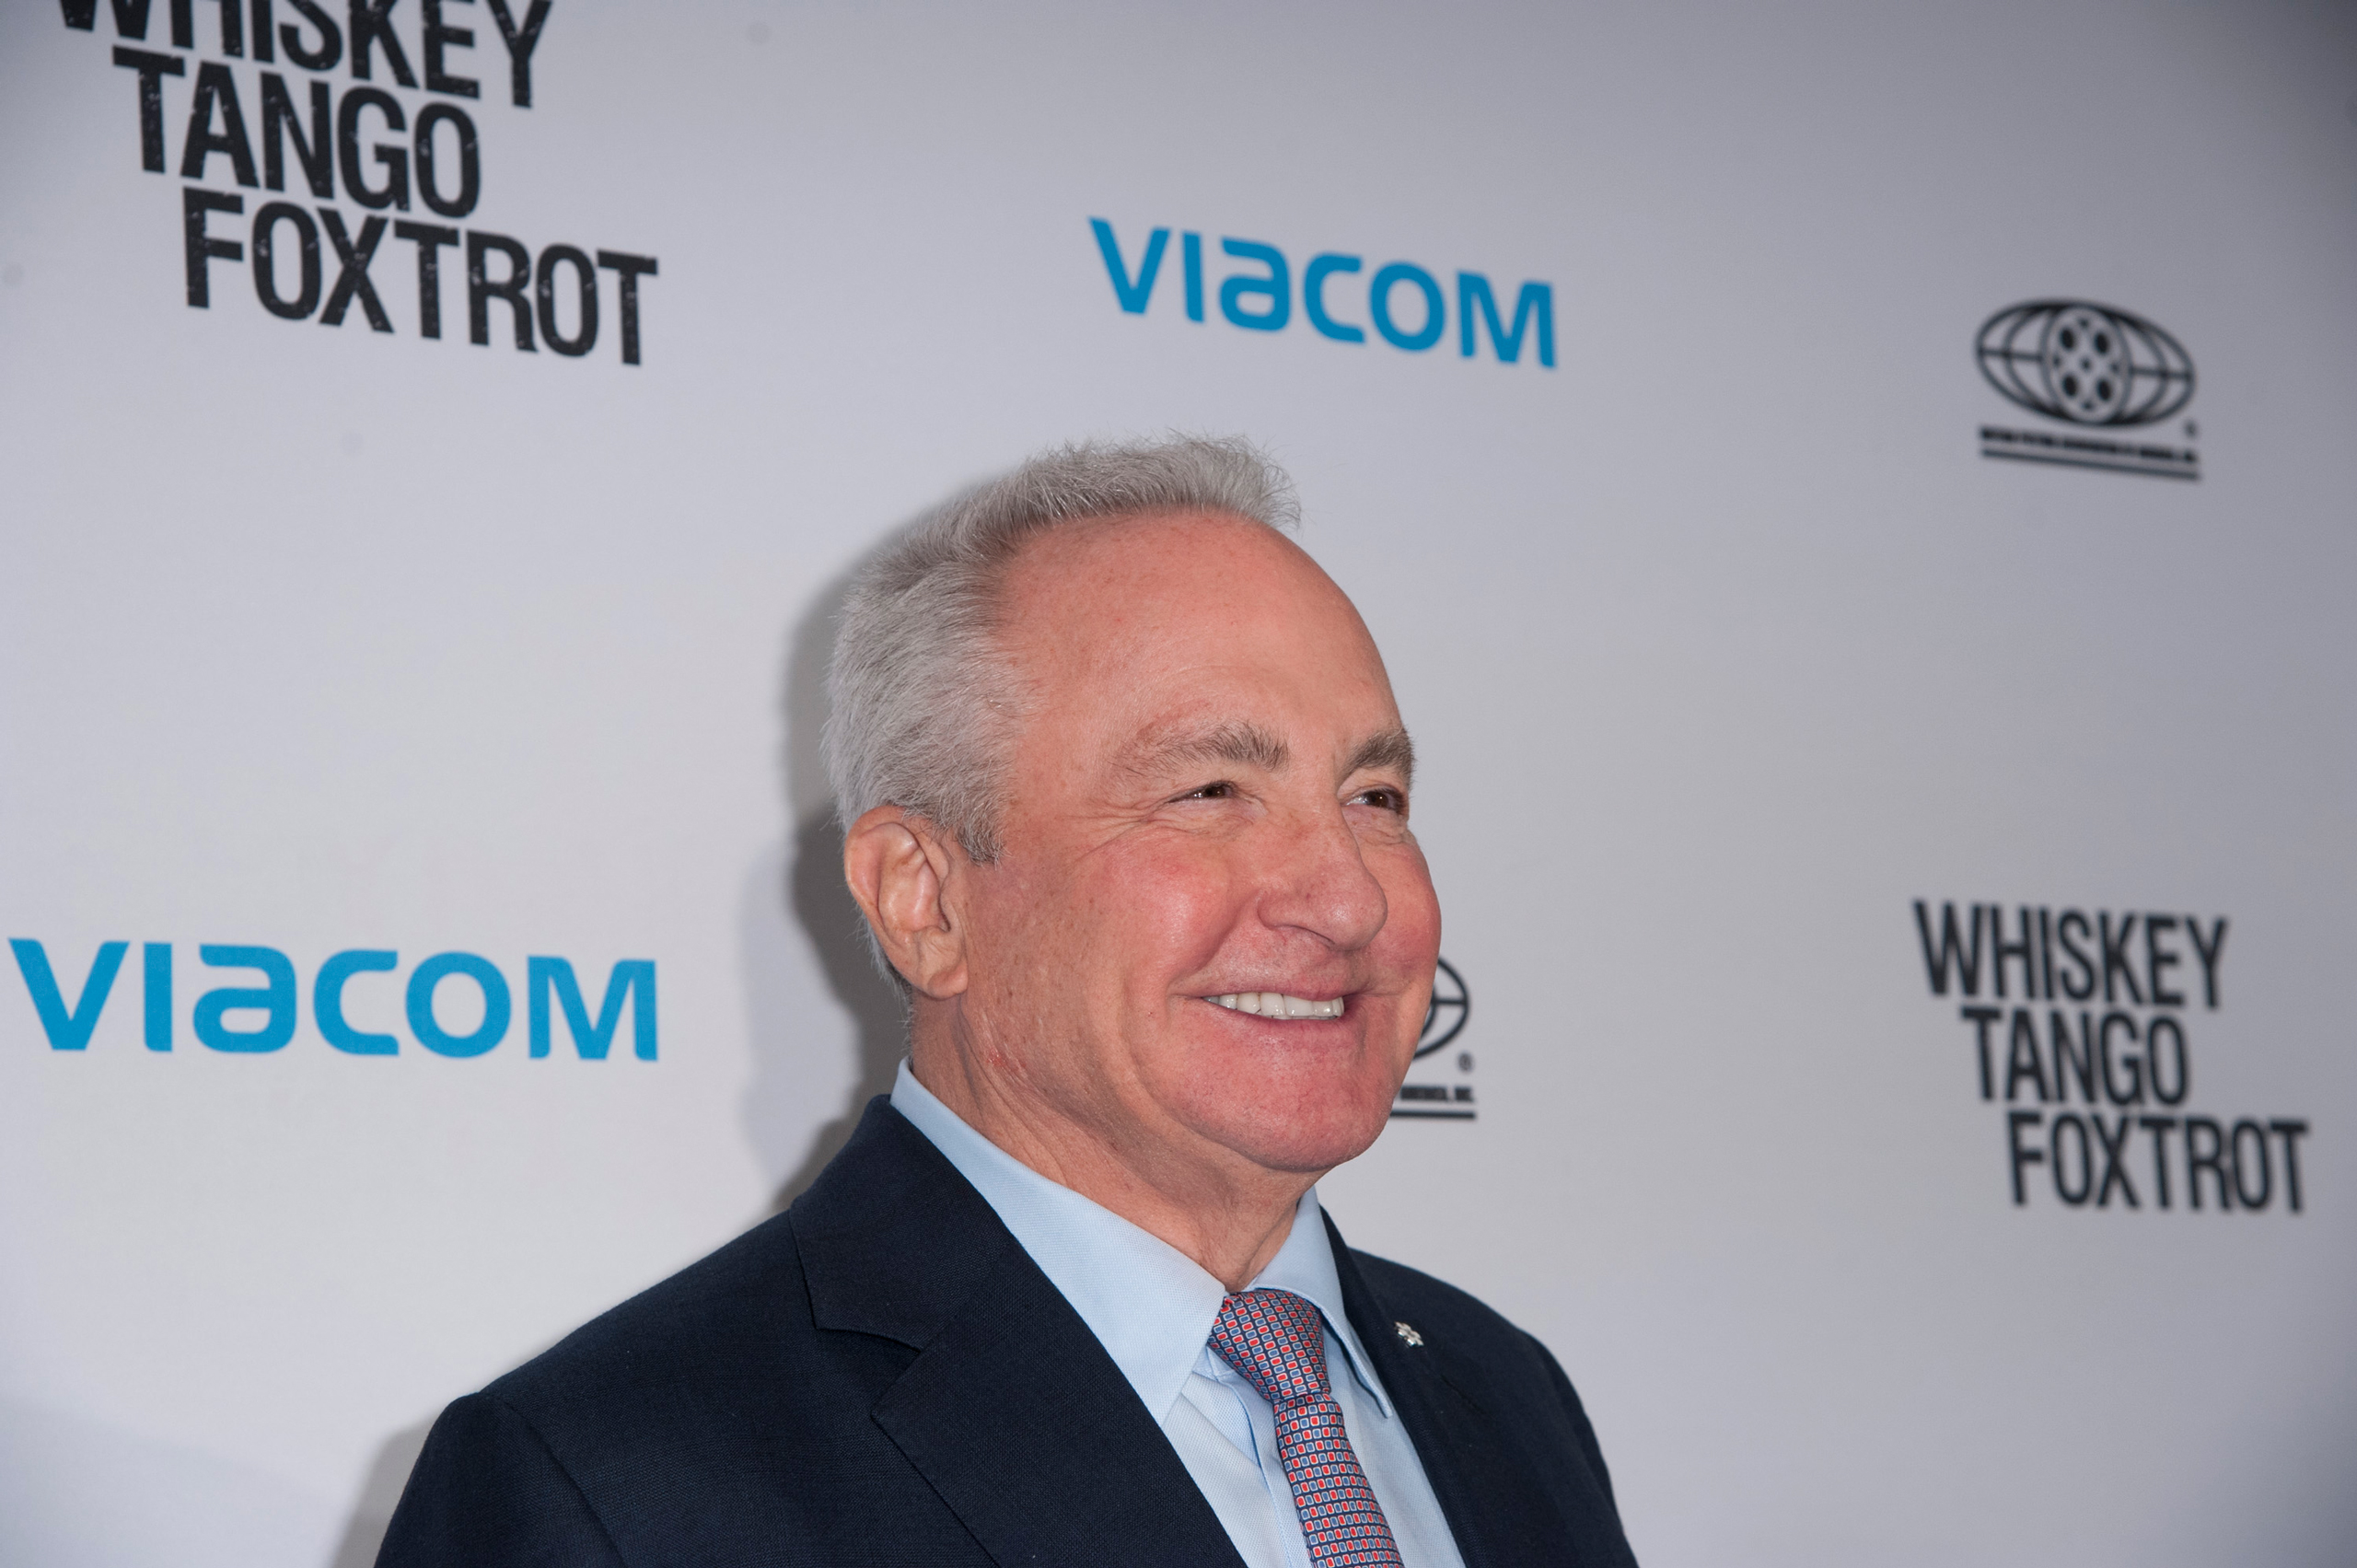 Lorne Michaels attend a special advance screening of Paramount Pictures'  Whiskey Tango Foxtrot  at Burke Theater hosted by Paramount Pictures and The Motion Picture Association of America in Washington on Feb. 23, 2016.